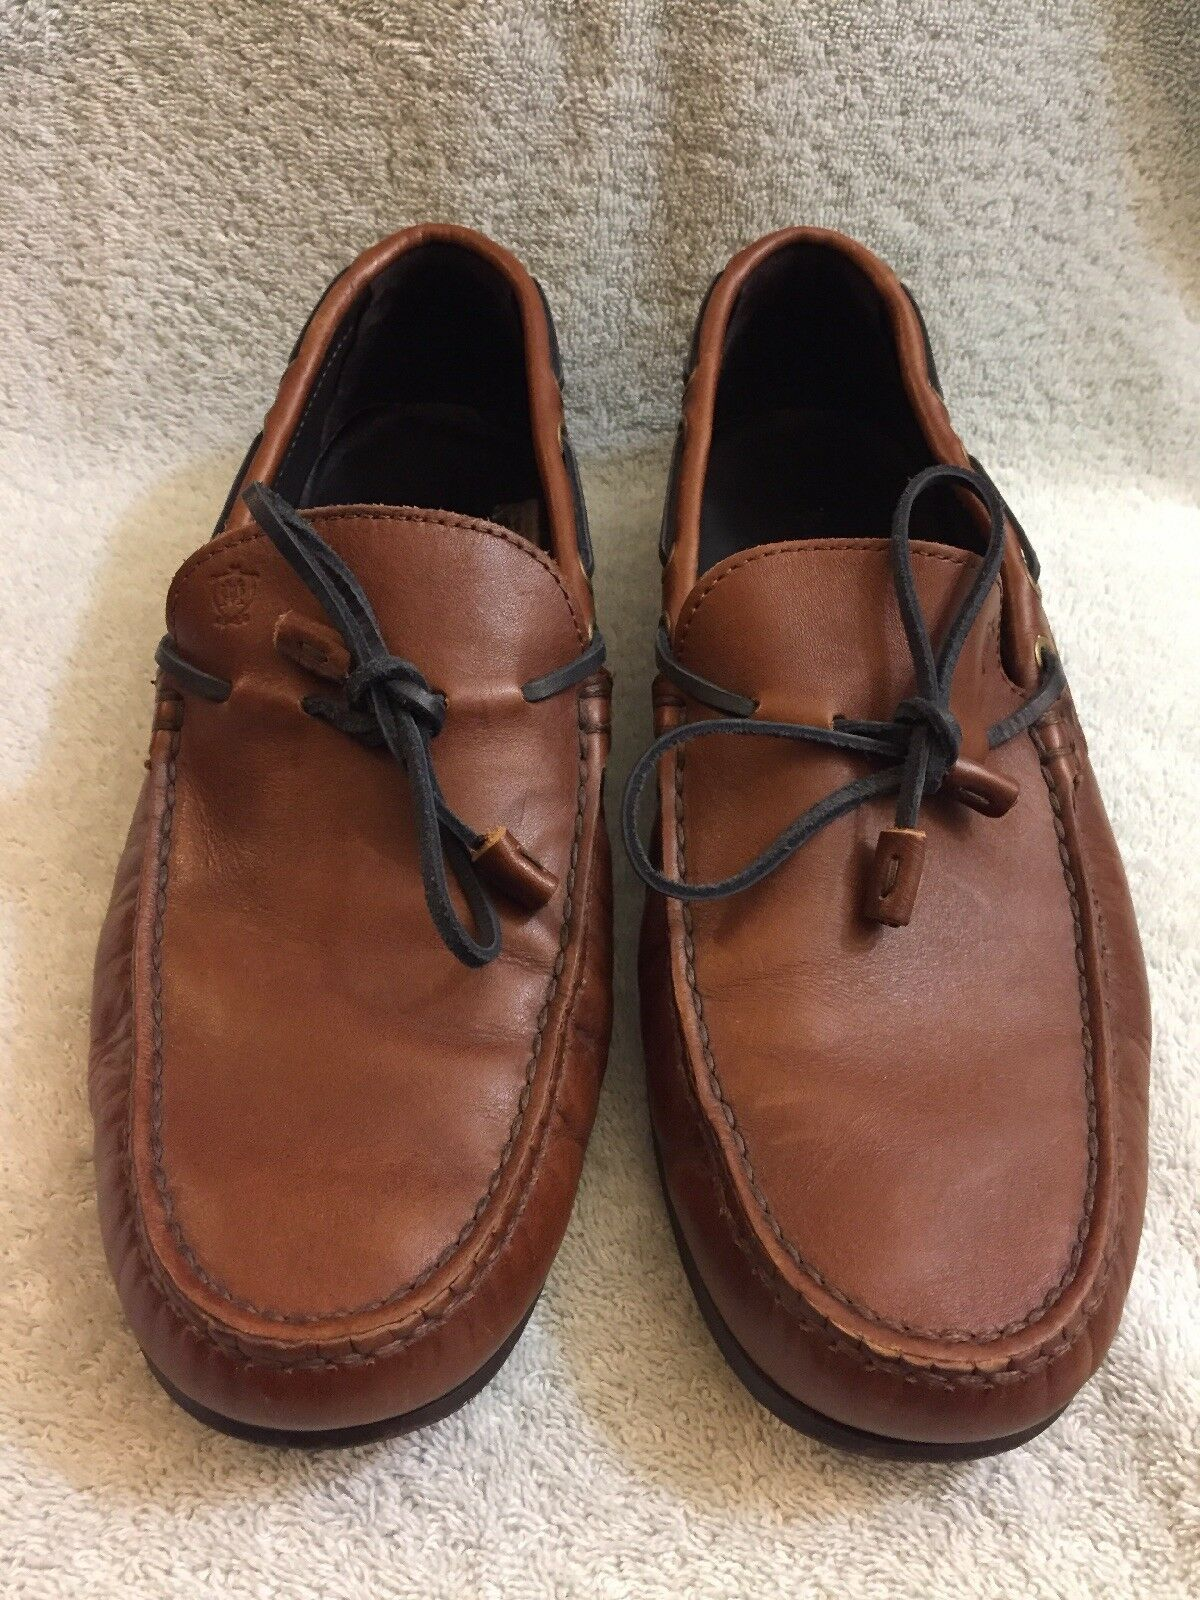 Massimo Dutti Men's Loafers BROWN Laether  Size Eu 42 Us 8.5